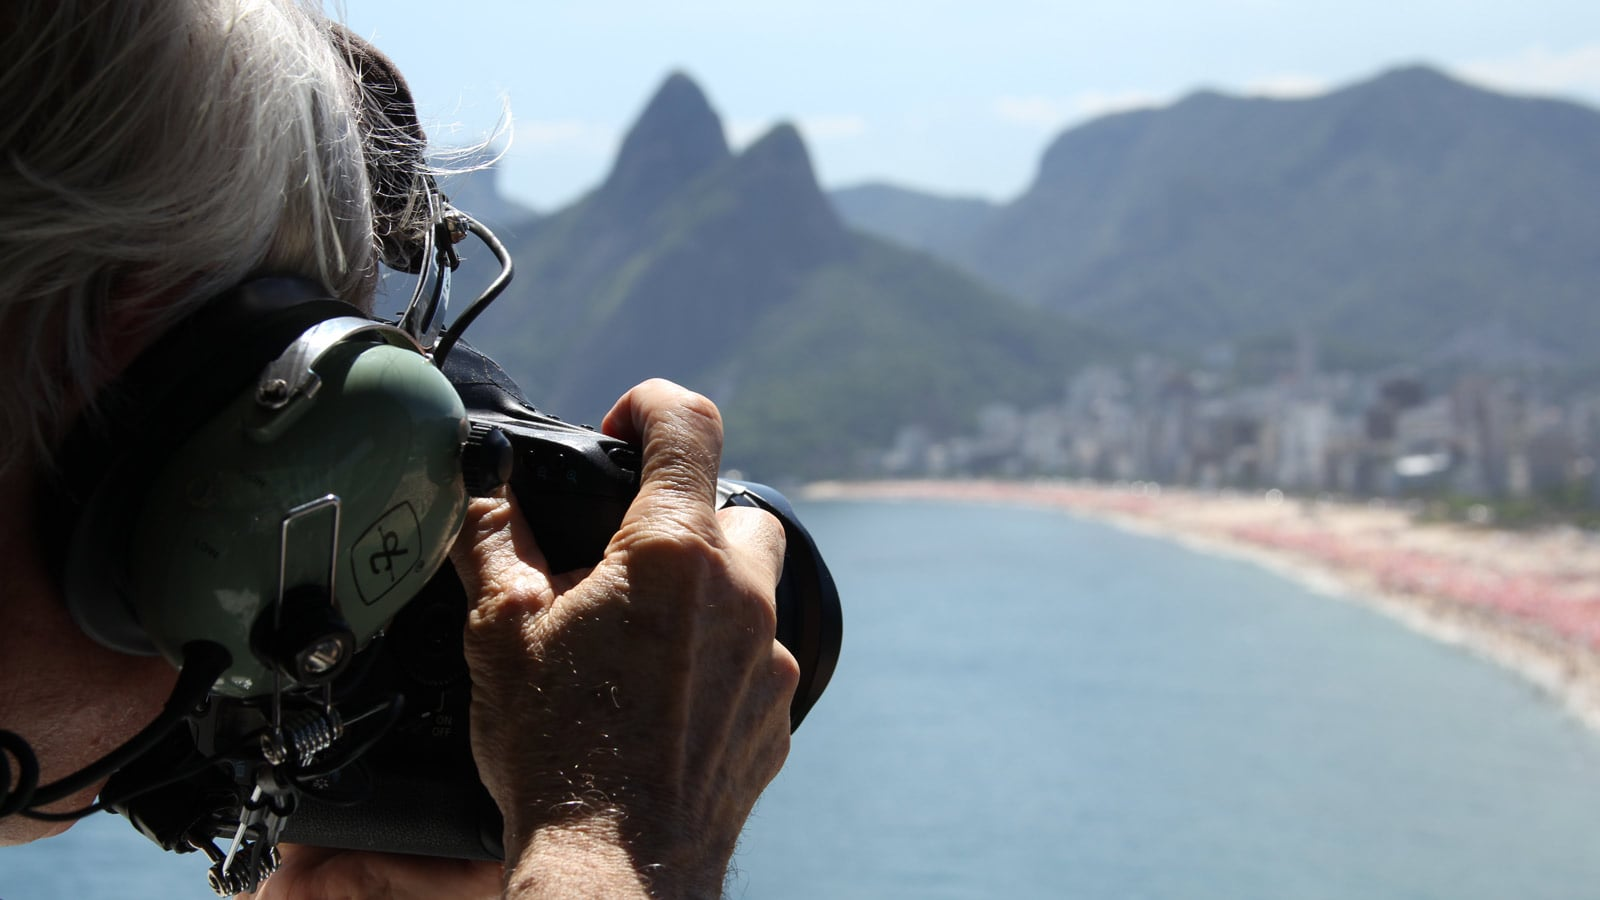 Yann Arthus-Bertrand taking a photo from a helicopter